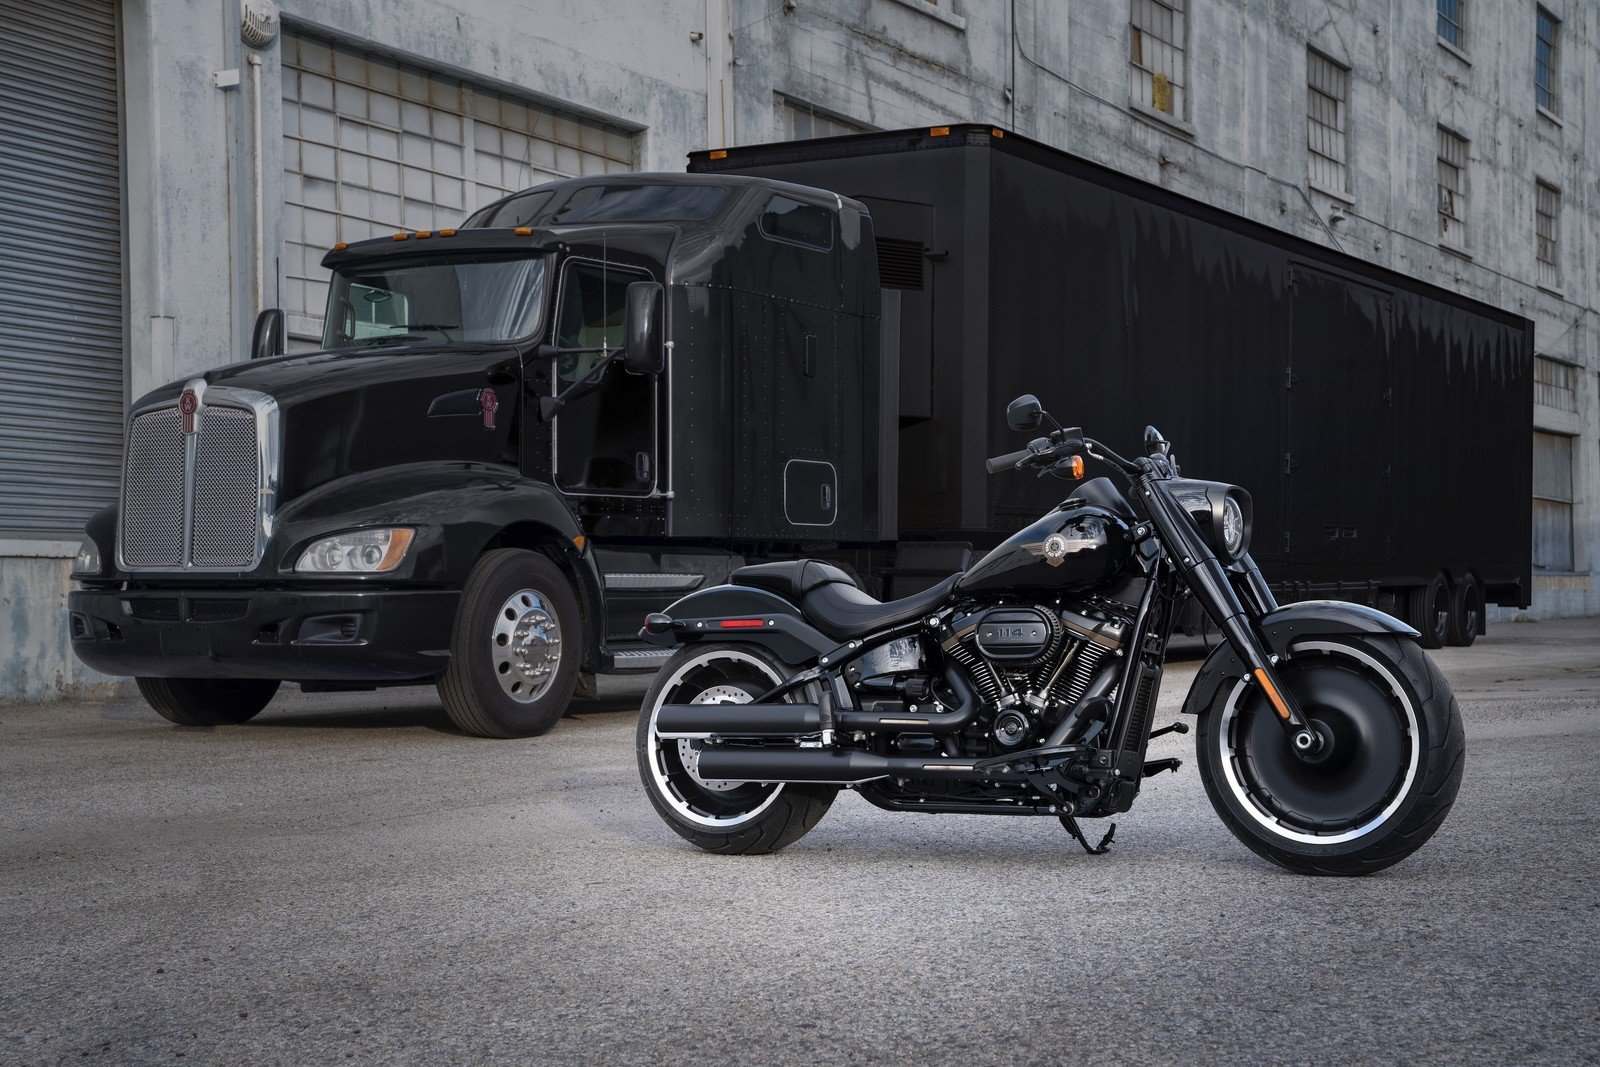 2020 Harley Davidson Fat Boy 30th Anniversary Limited Edition Top Speed